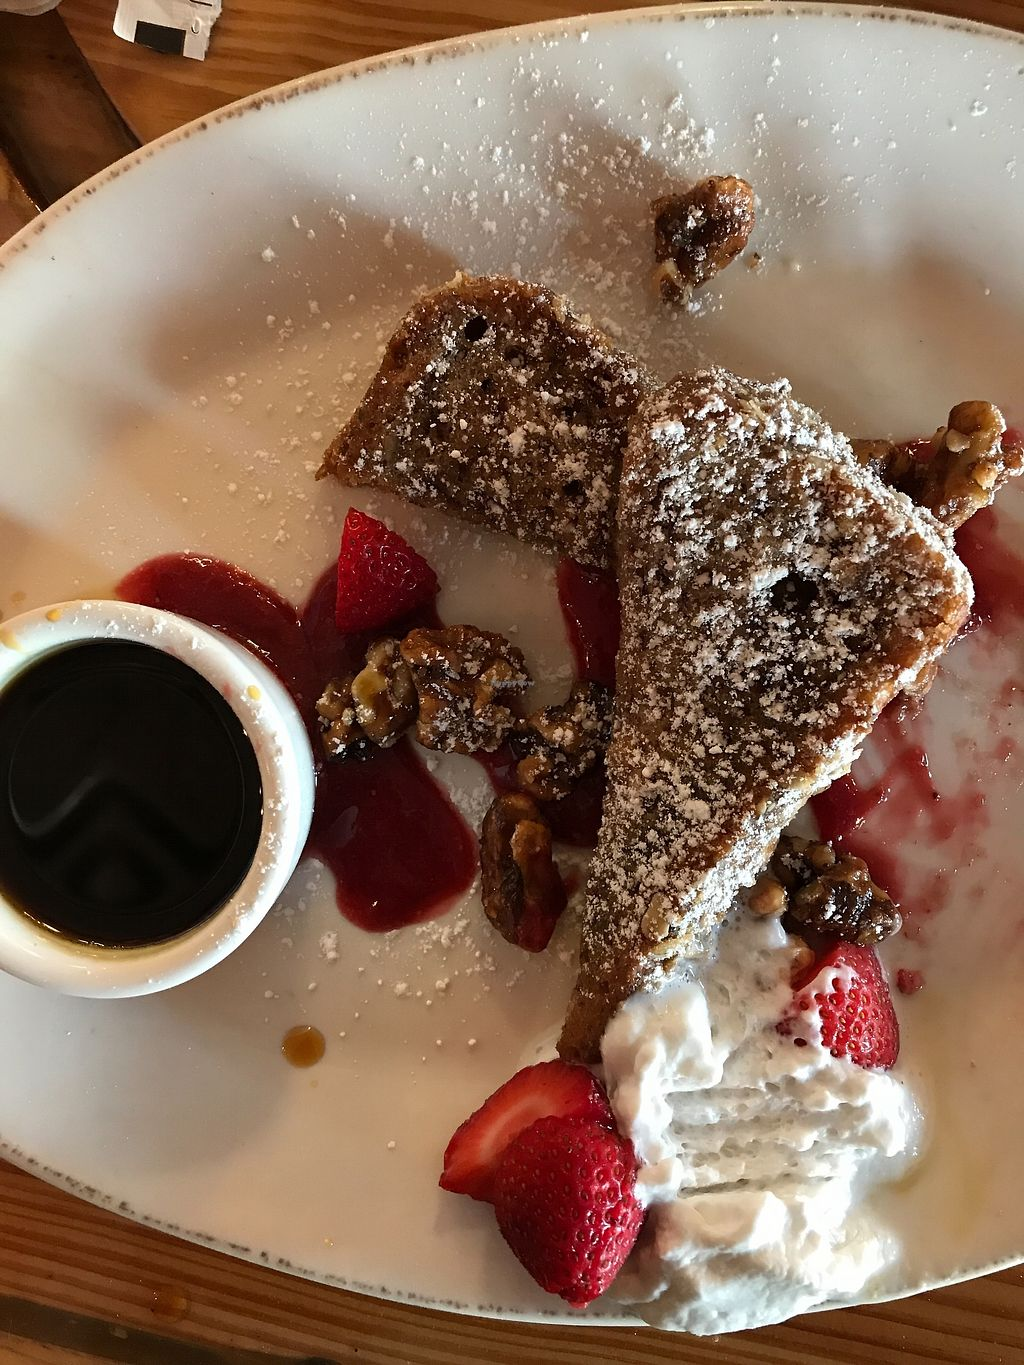 """Photo of Pomegranate Cafe - Chandler Blvd  by <a href=""""/members/profile/Katienglass"""">Katienglass</a> <br/>Strawberry French toast with walnuts and coconut cream <br/> July 24, 2017  - <a href='/contact/abuse/image/22101/284111'>Report</a>"""